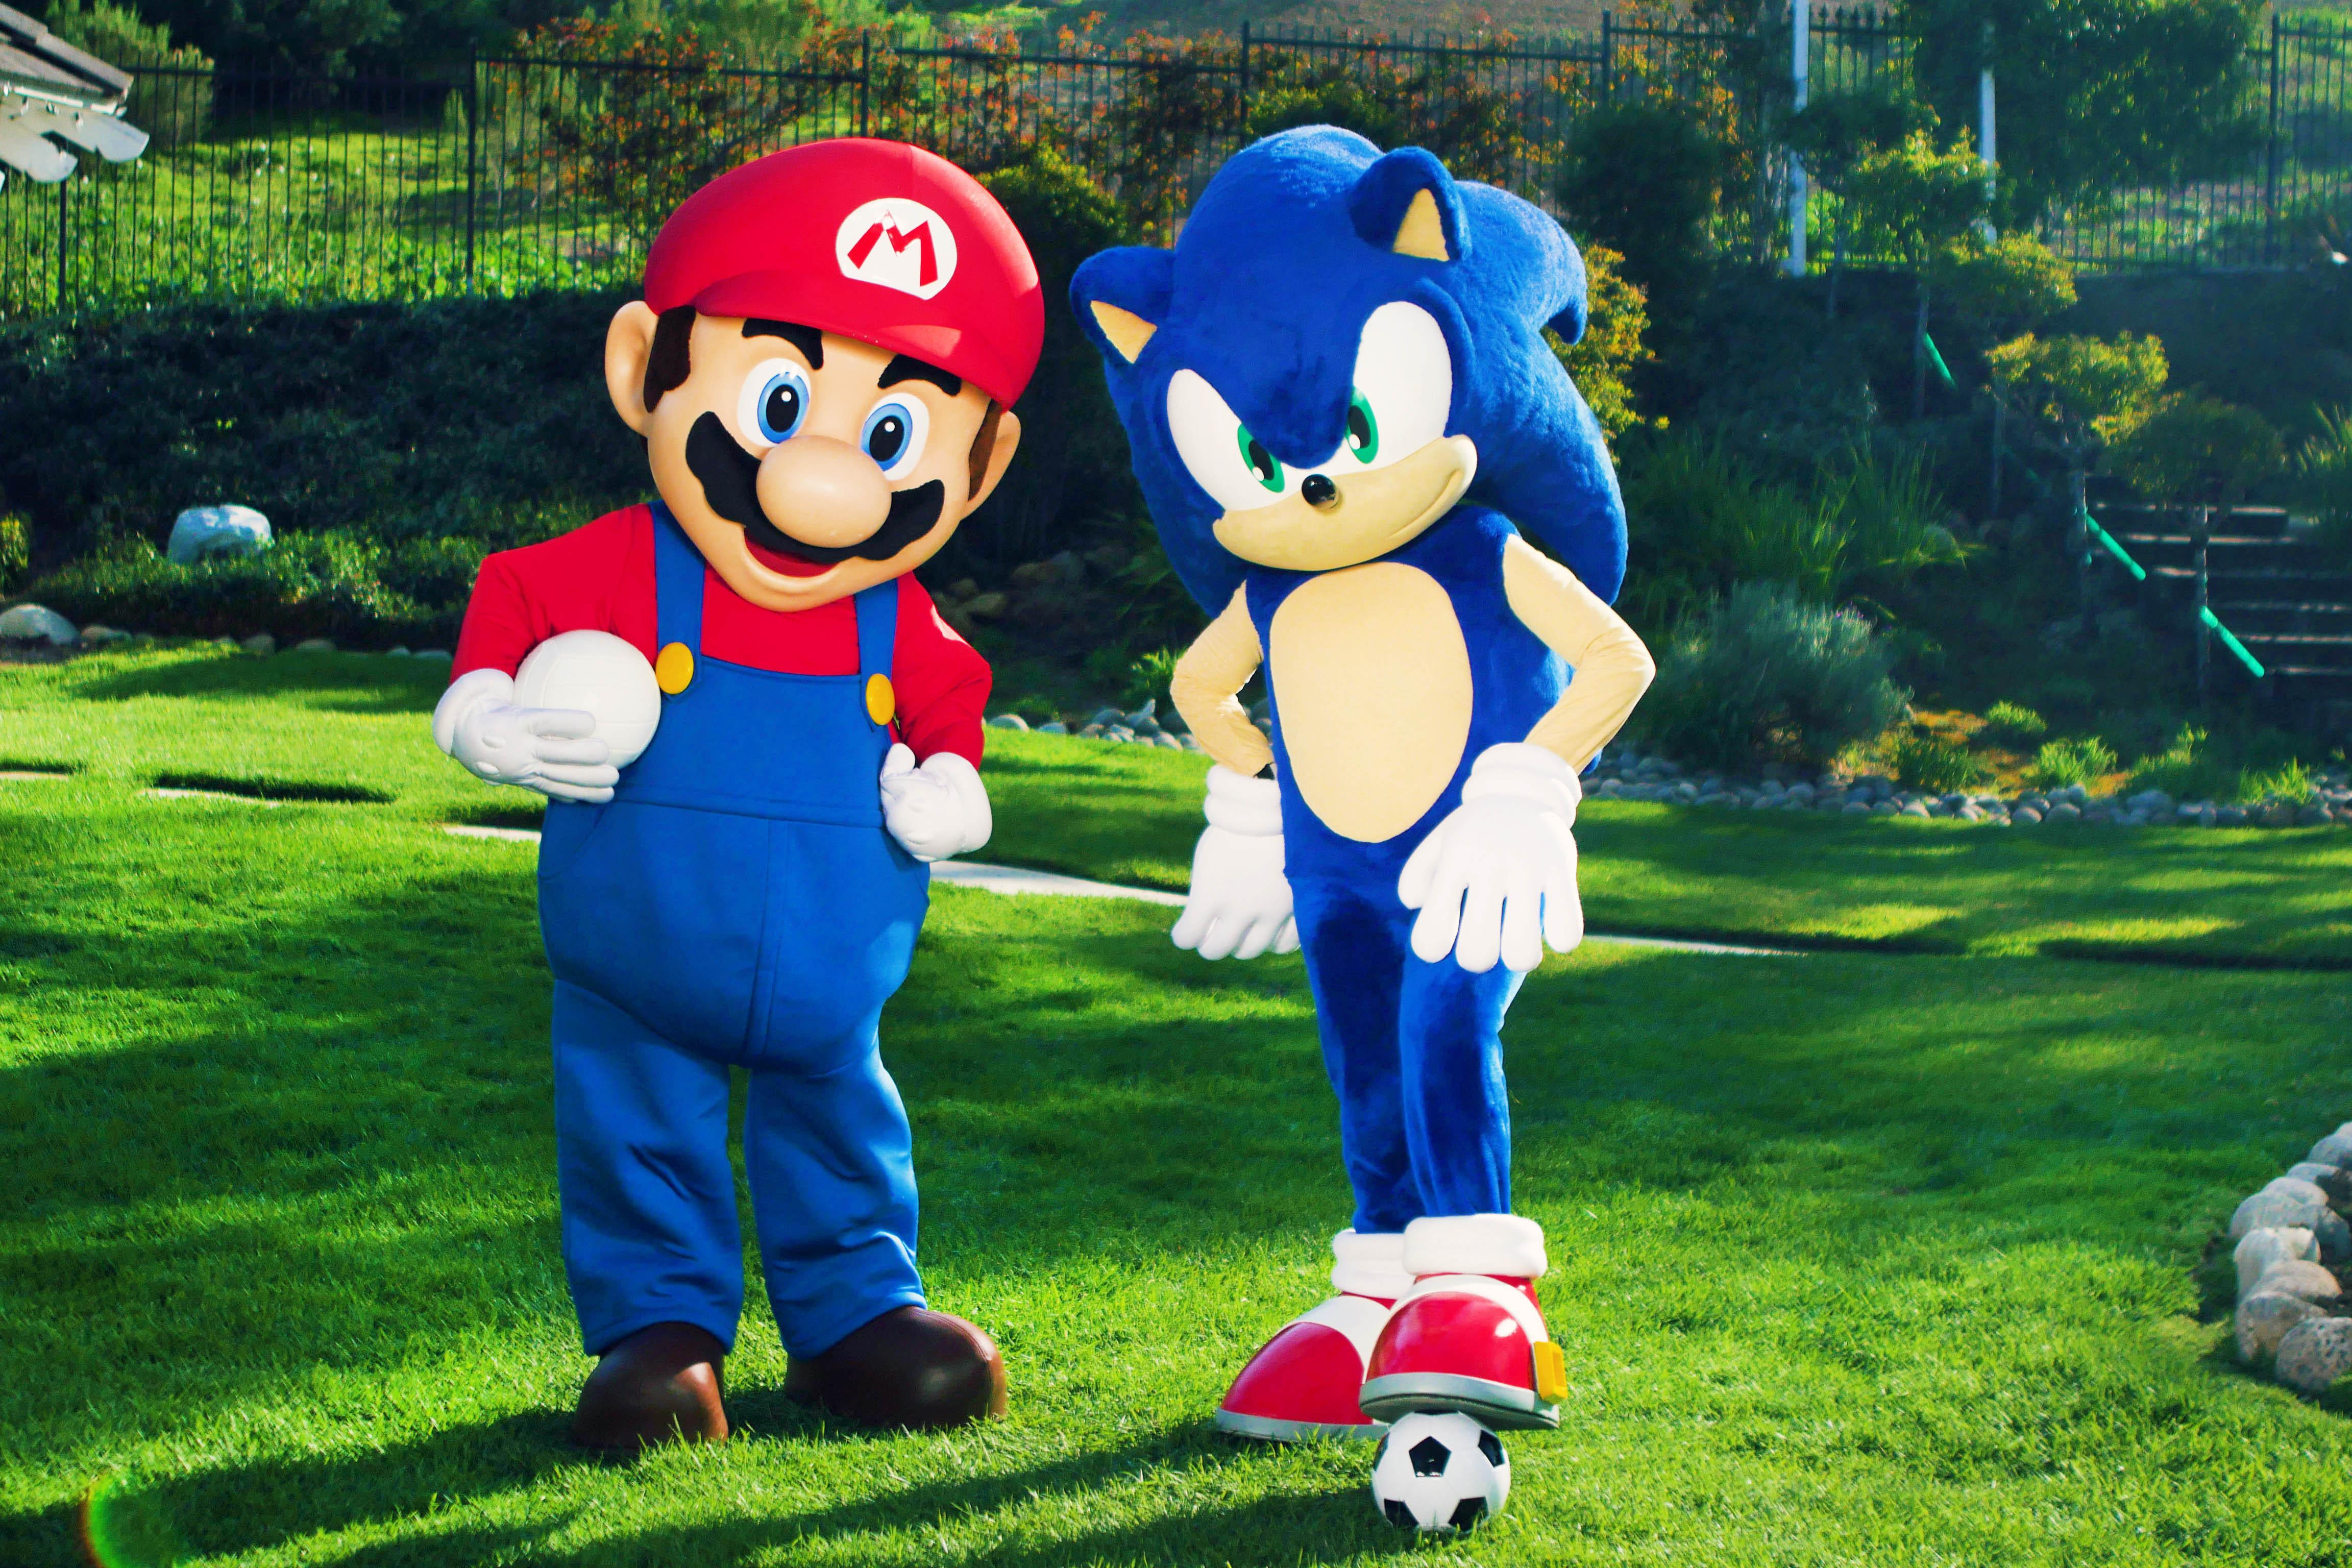 Can't go too fast: Nintendo is giving away 'Mario & Sonic' prizes to active fans